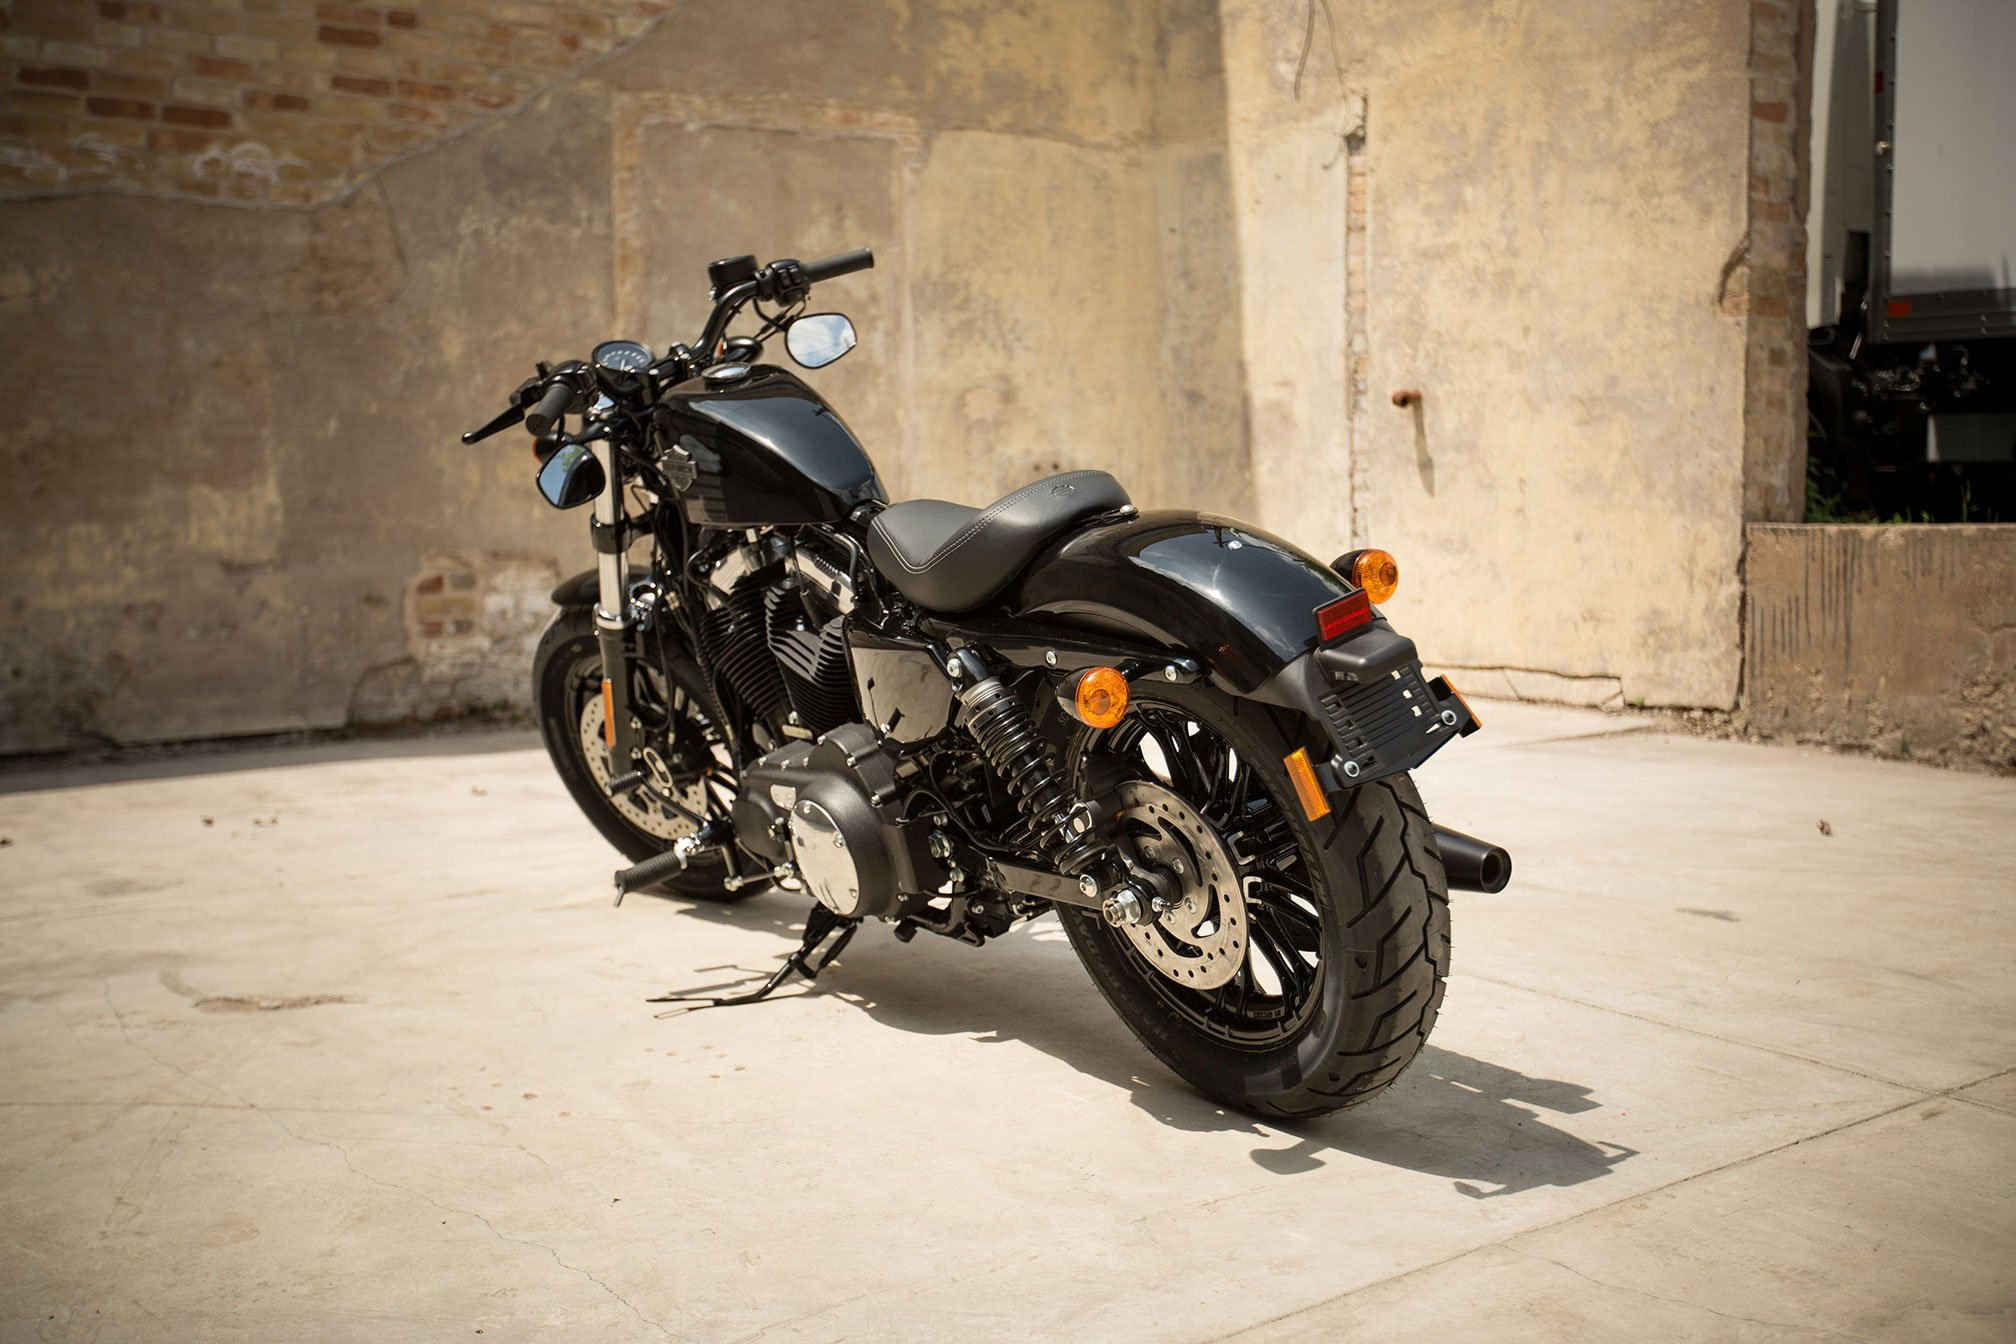 2016 Harley Davidson Forty Eight Motorbike Bike Motorcycle Wallpaper